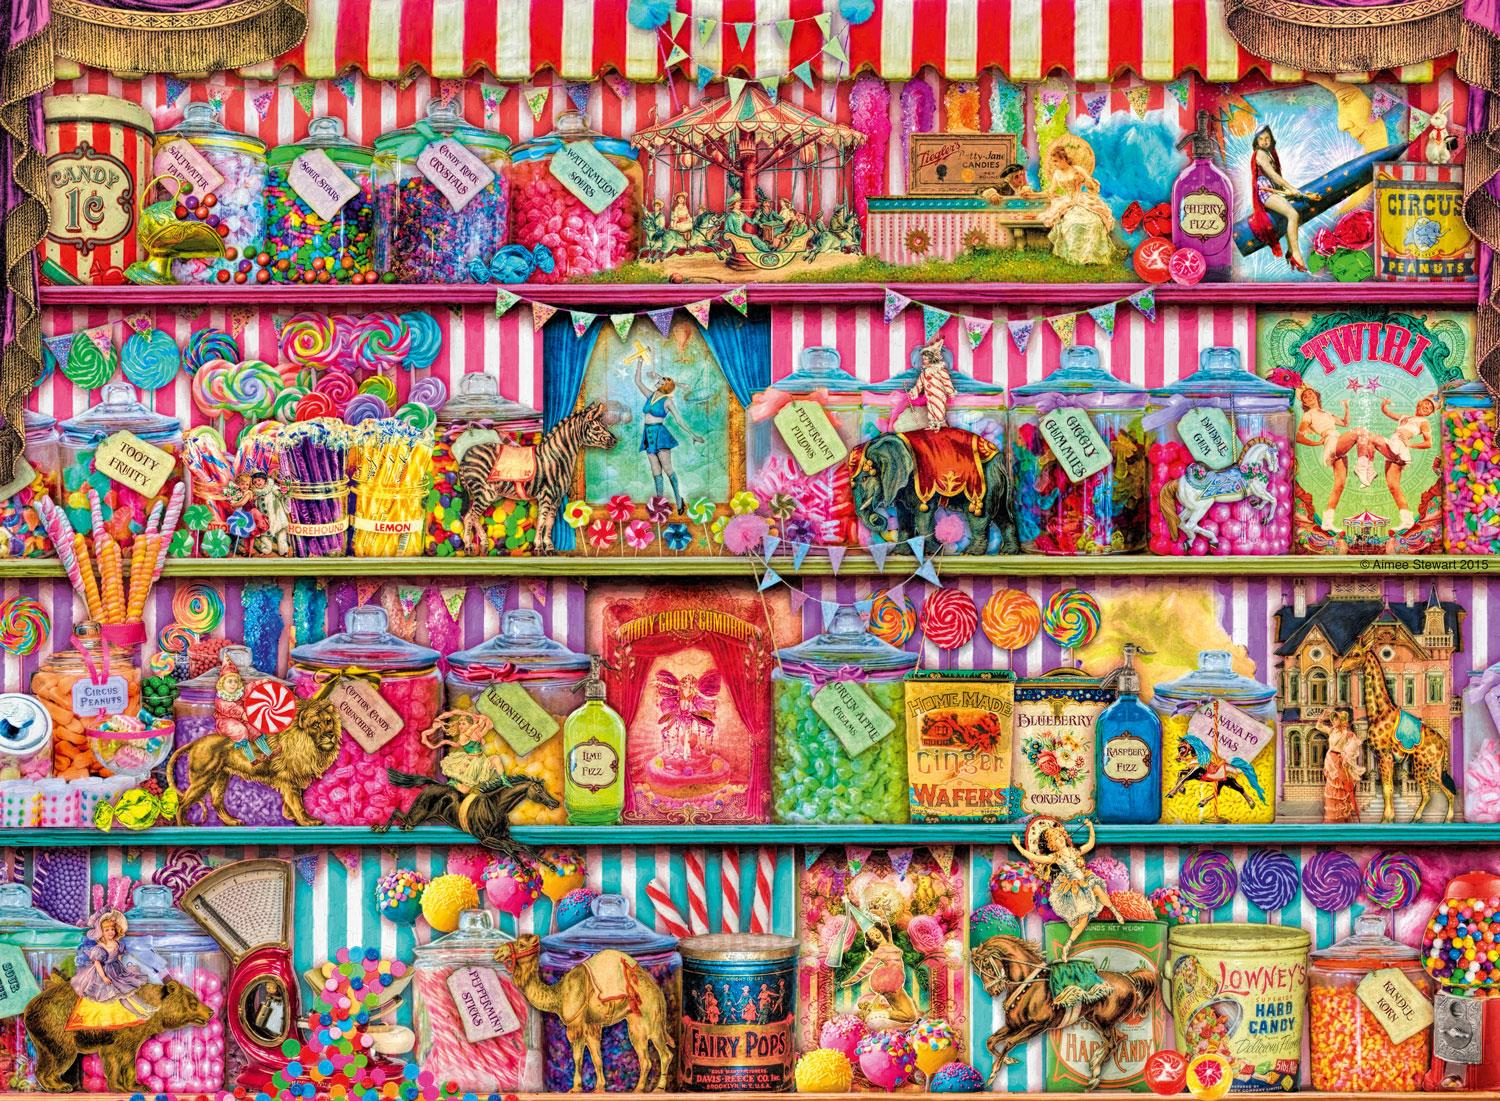 Ravensburger The Sweet Shop Jigsaw Puzzle (500 Pieces)